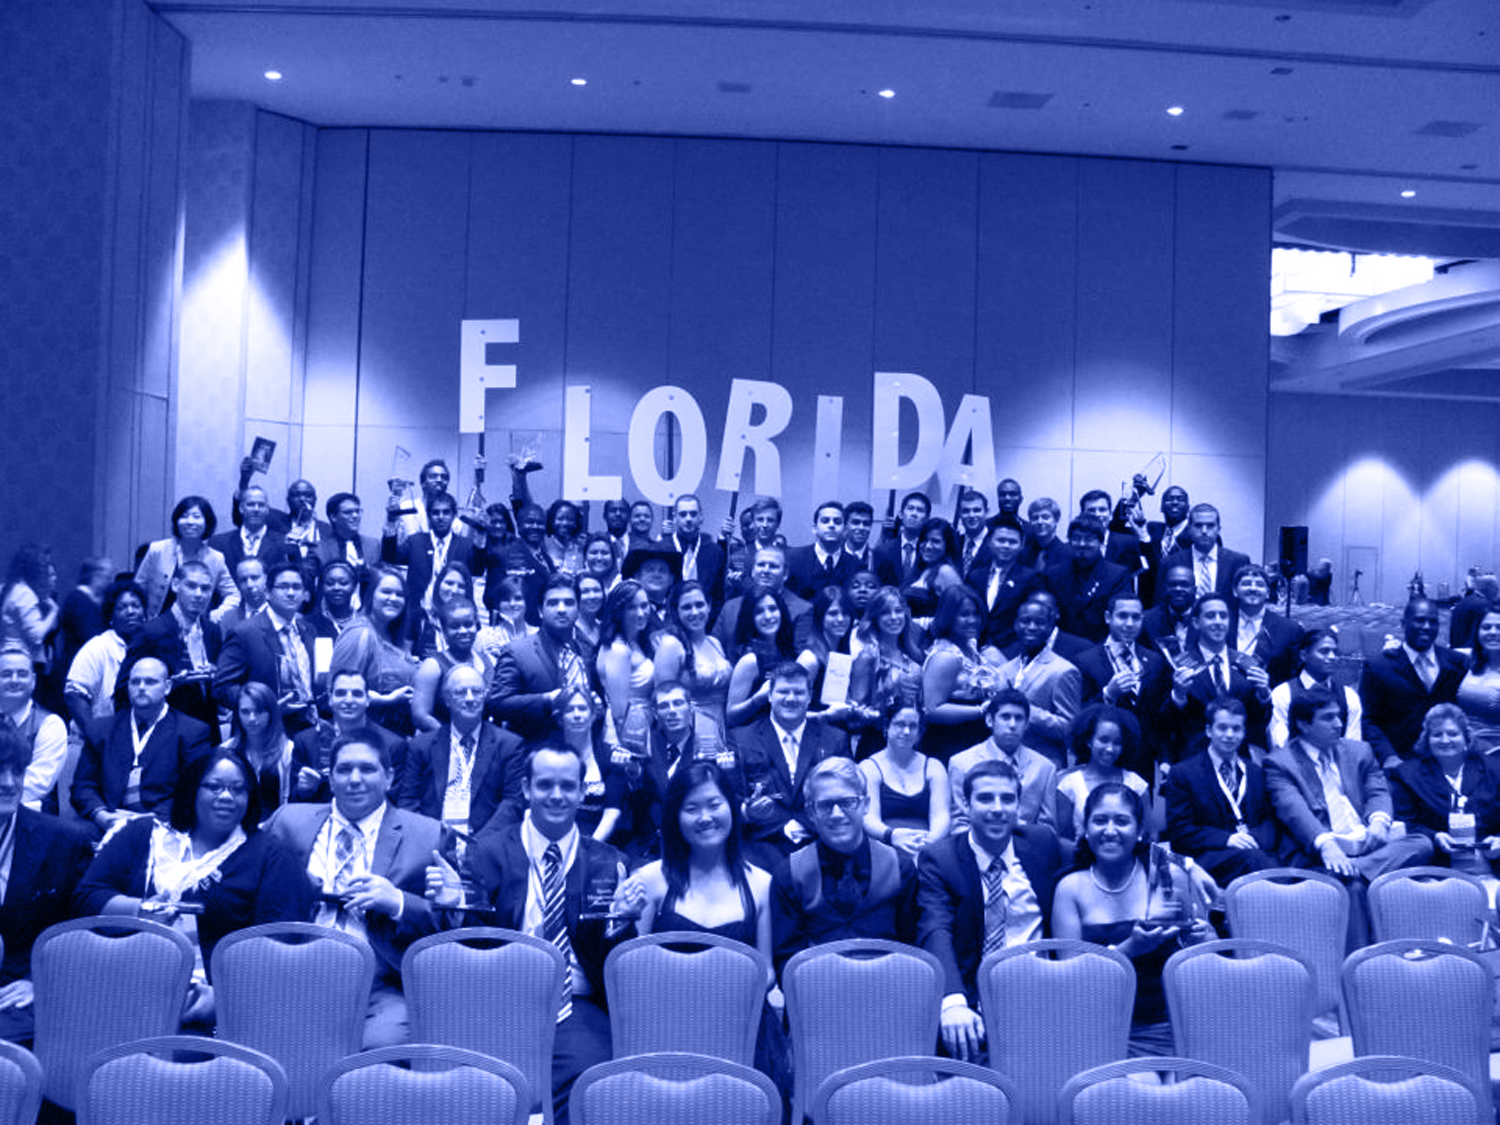 Top 5 Takeaways of Florida FBLA-PBL - Develop your business leadership skillsIncrease confidence in yourself and your workLearn how to become involved in leadership opportunitiesHave a better understanding of American business enterprisesDevelop a path towards future college and career goals